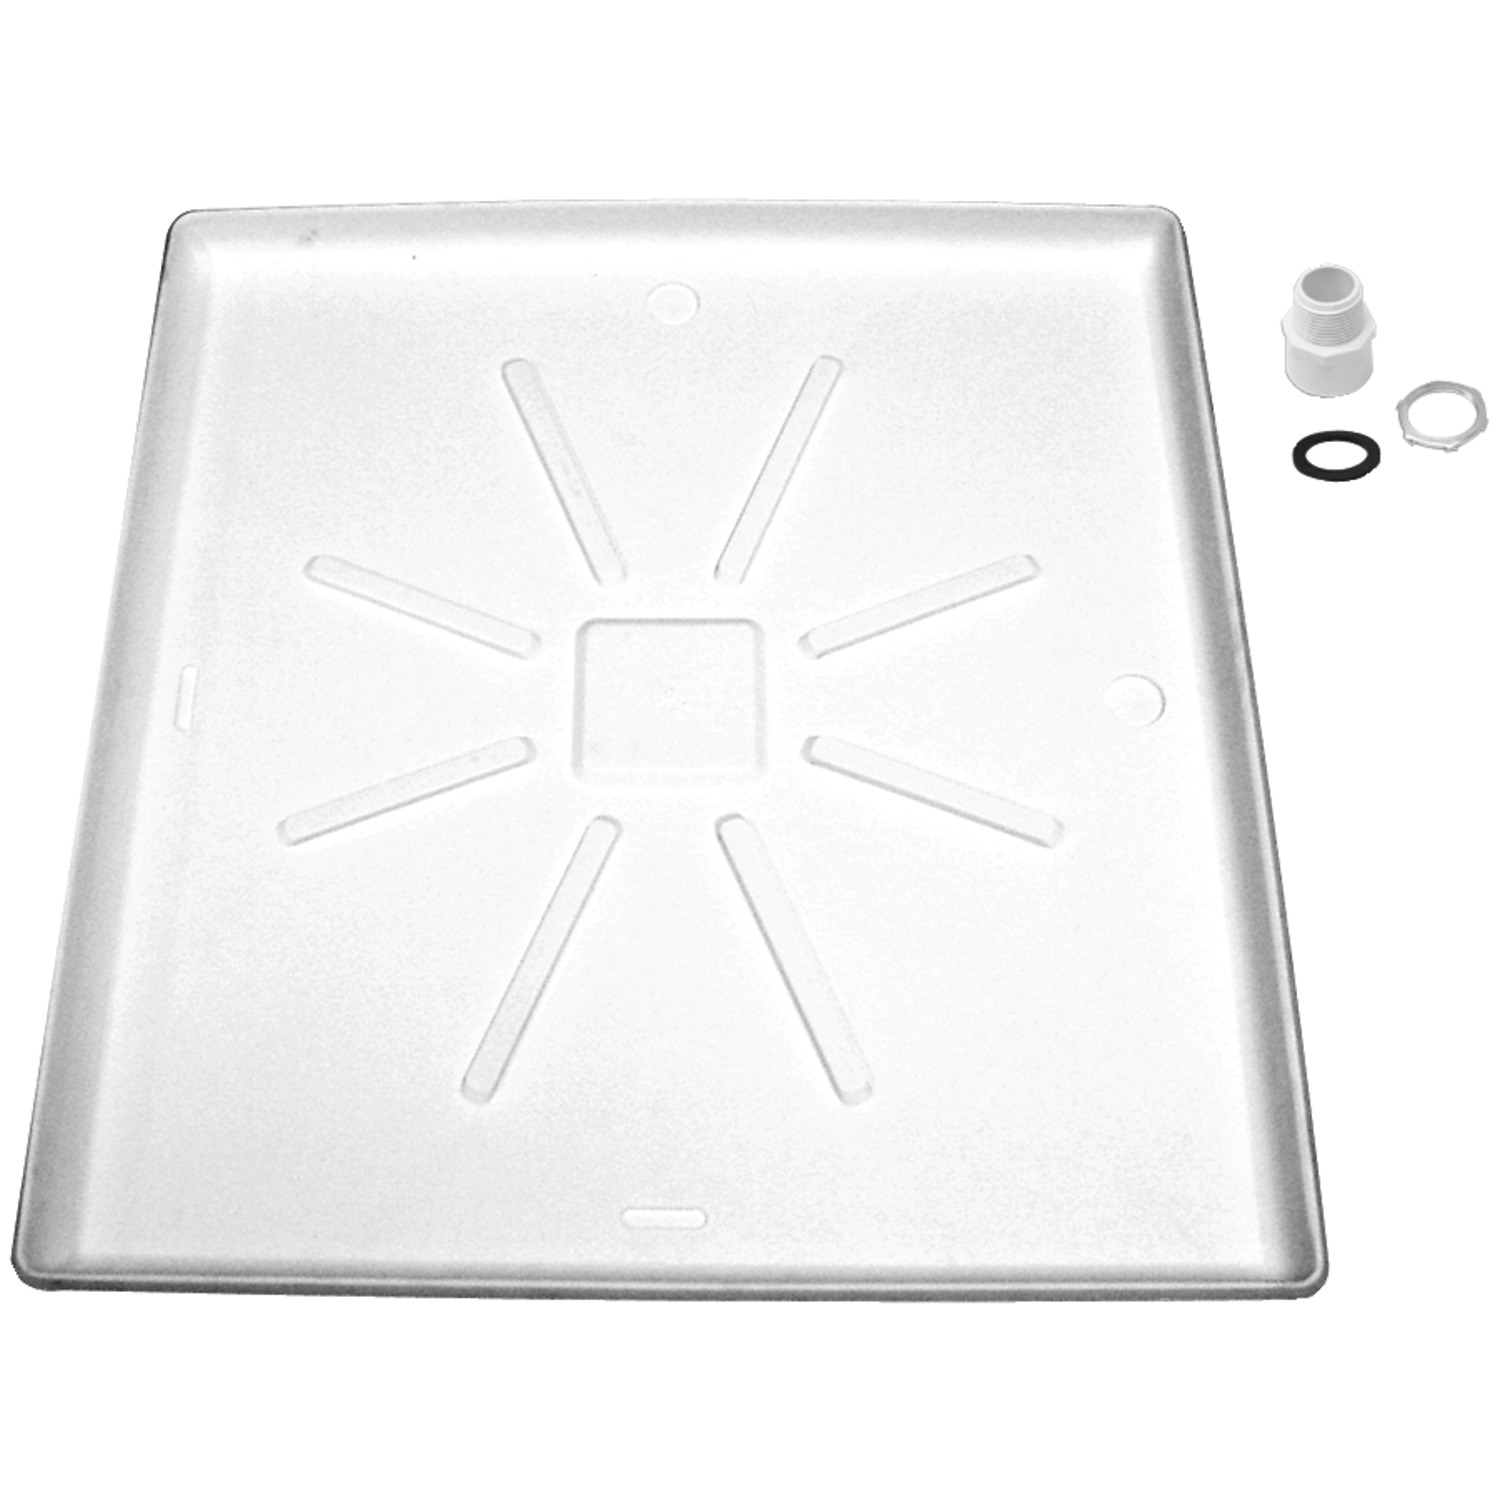 LAMBRO 1780 WASHING MACHINE TRAY (STANDARD)